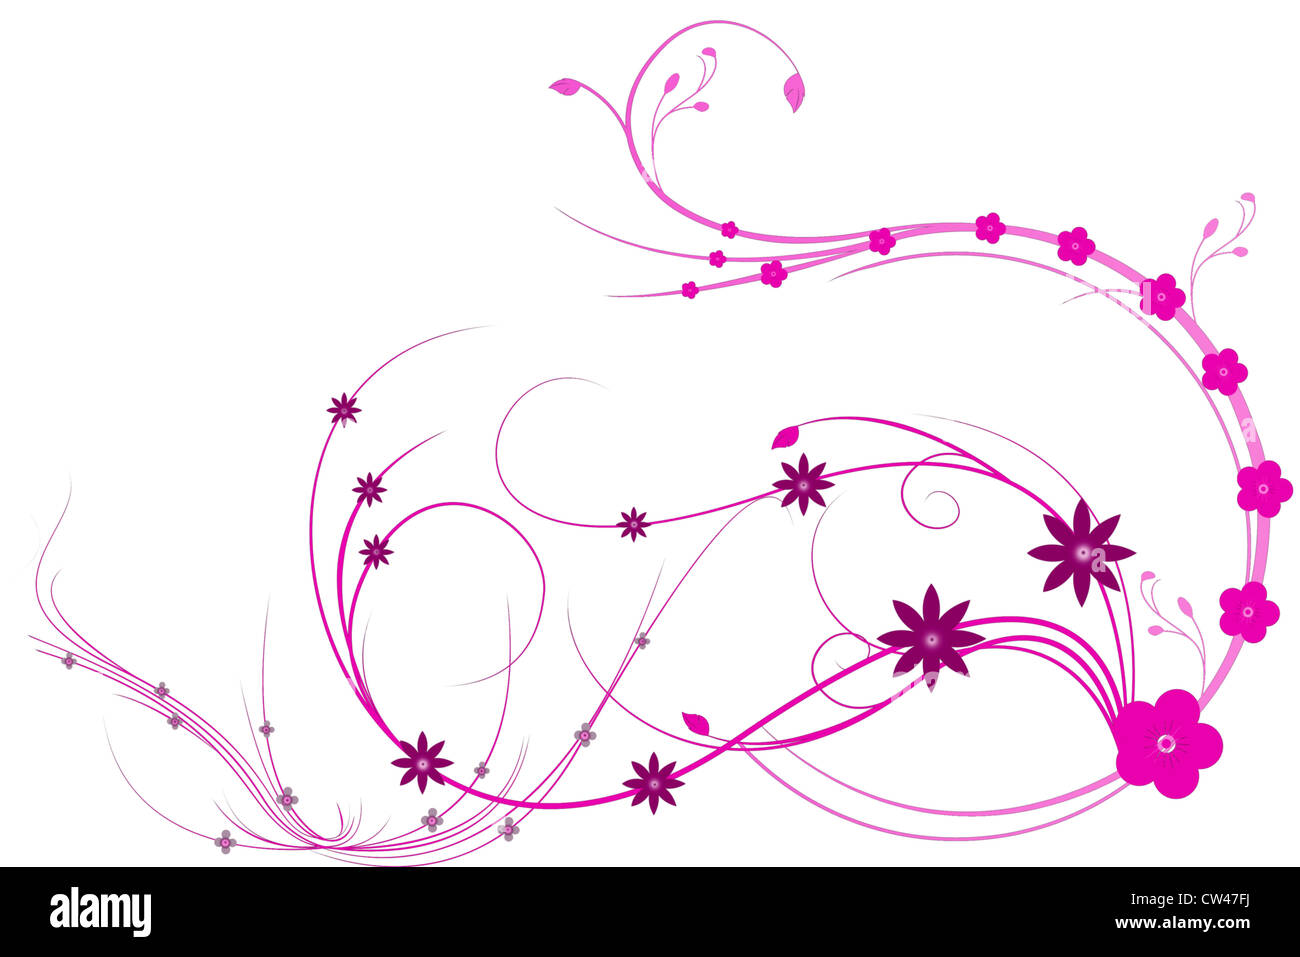 Beautiful illustrated flower background design with space for your text Stock Photo